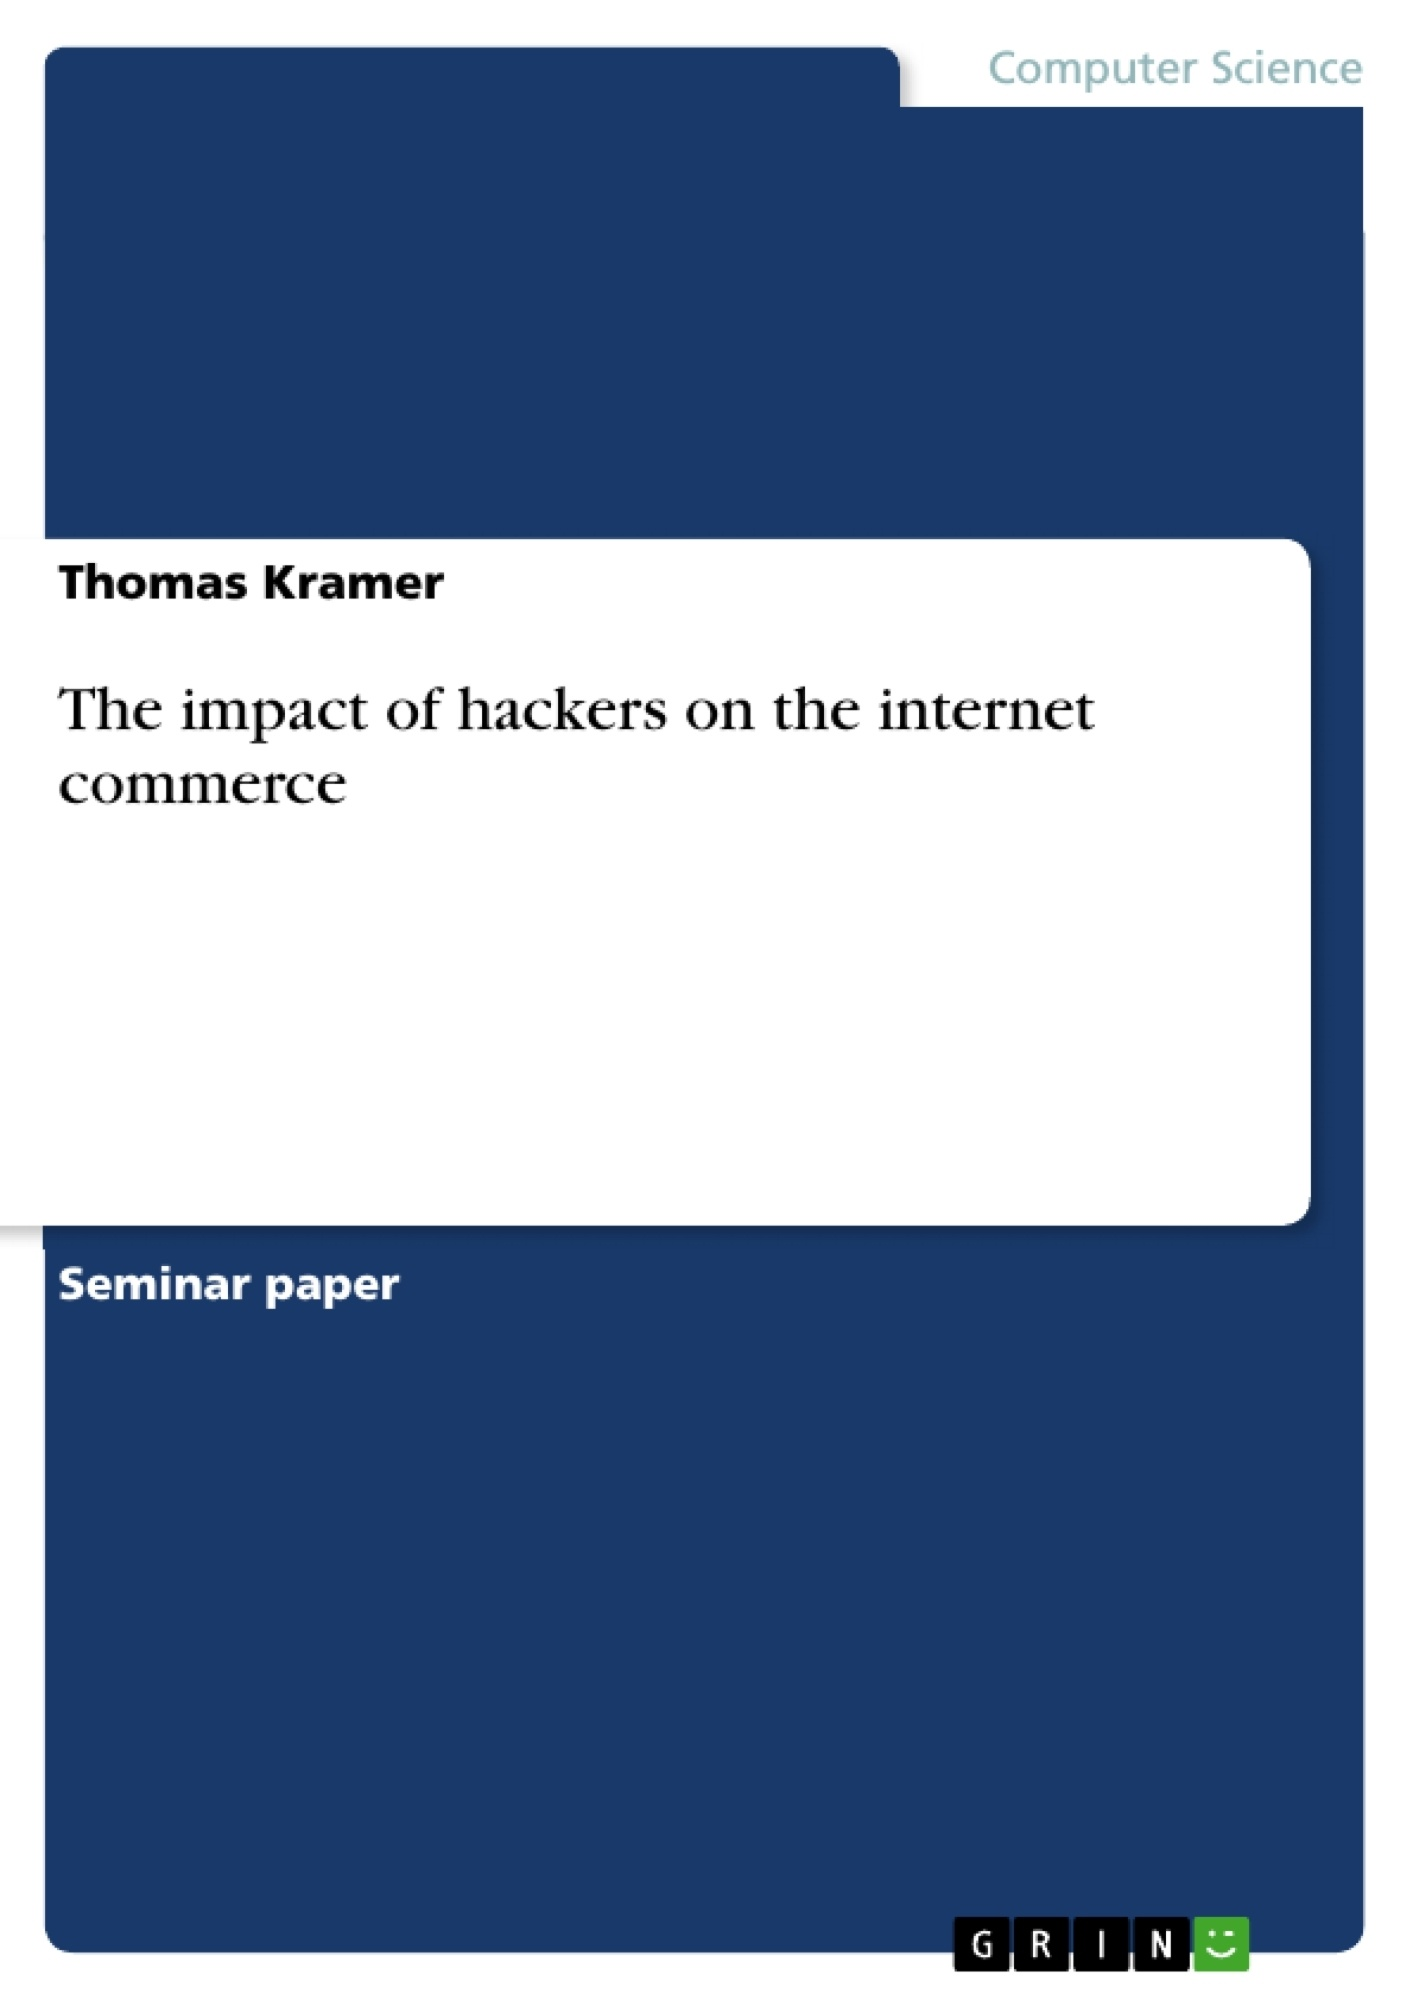 Title: The impact of hackers on the internet commerce